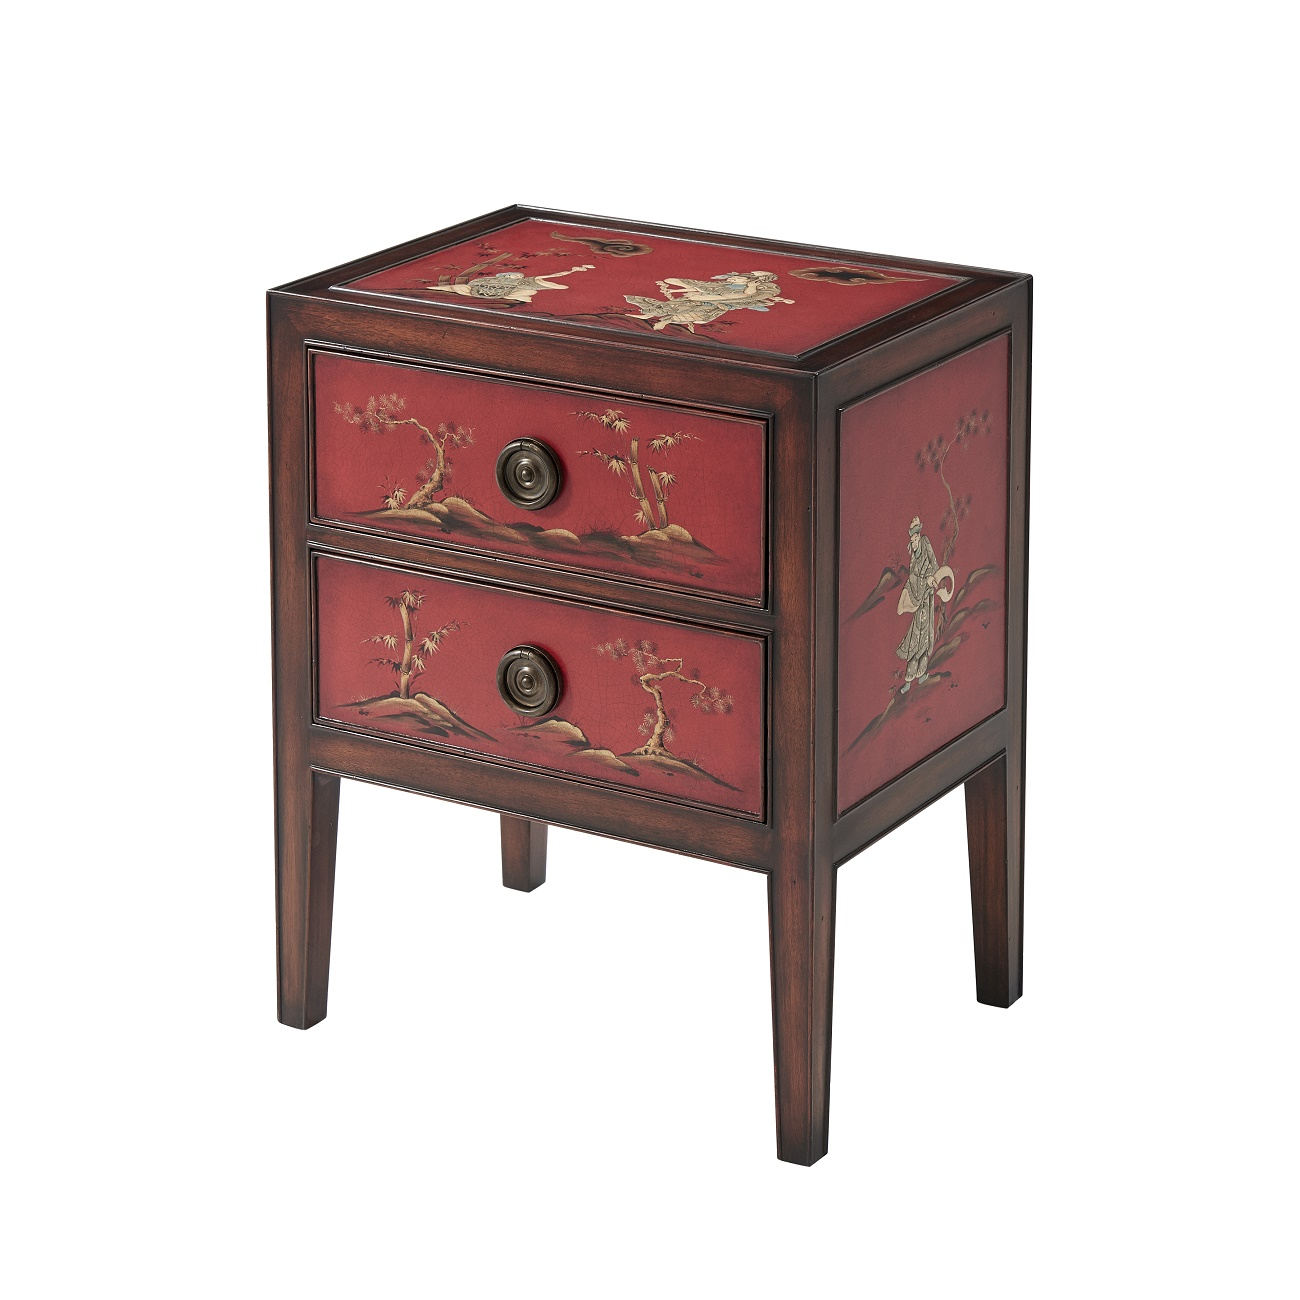 5002 209 A Vision In Scarlet Nightstand theodore alexander